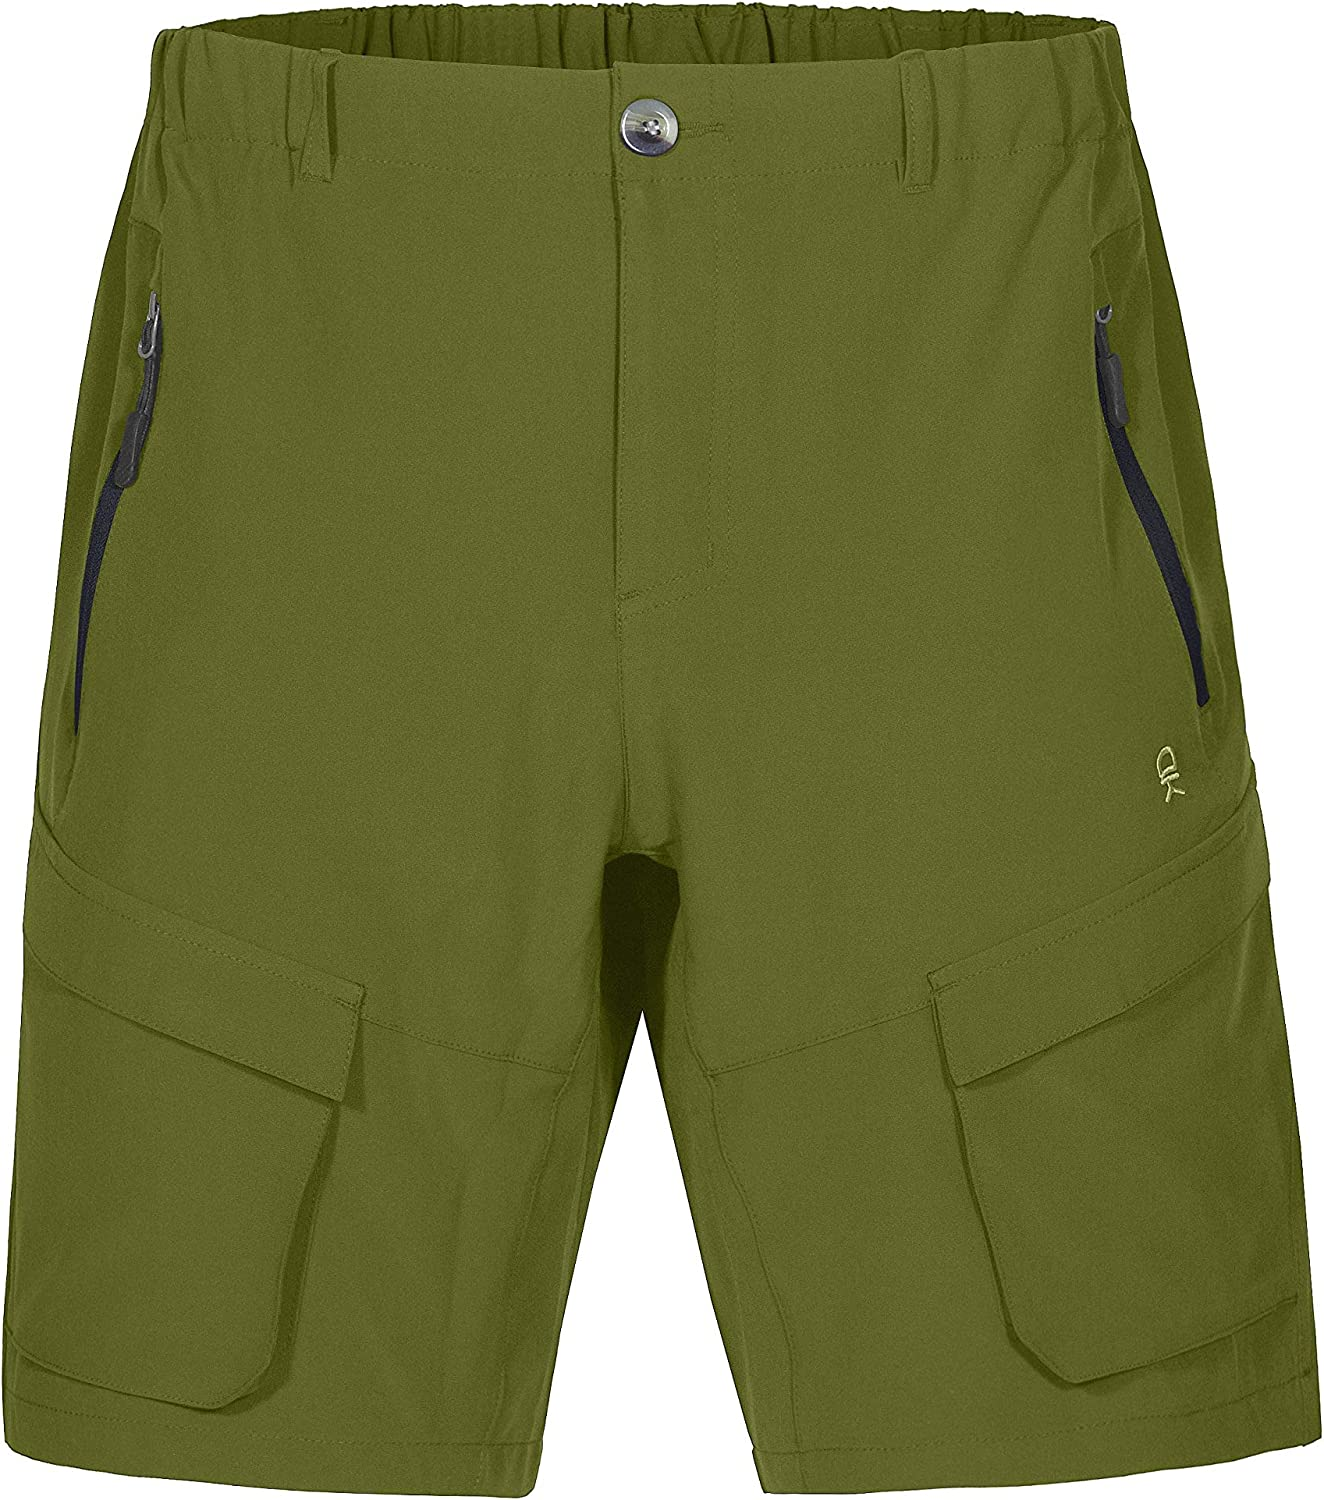 Little Donkey Andy Men's Stretch Quick Dry Cargo Shorts for Hiking, Camping, Travel: Clothing